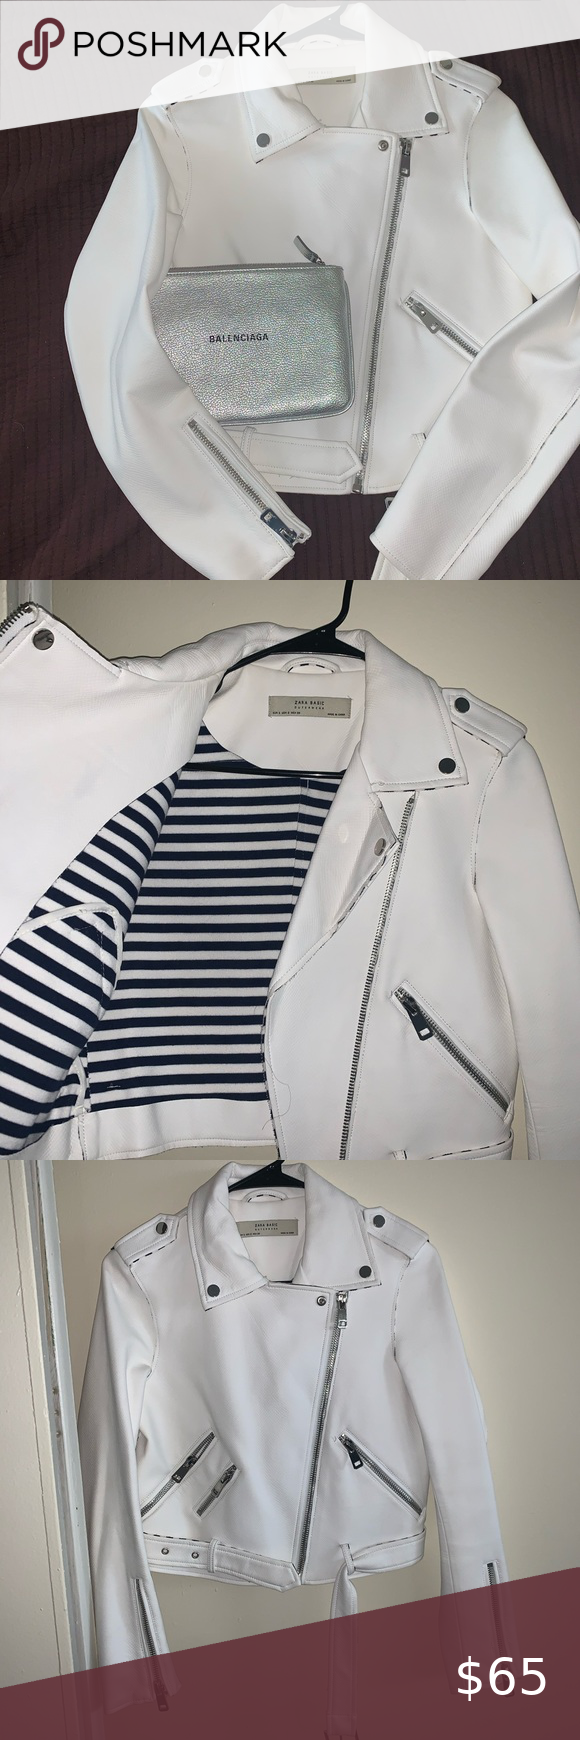 Zara white faux leather jacket in 2020 White faux